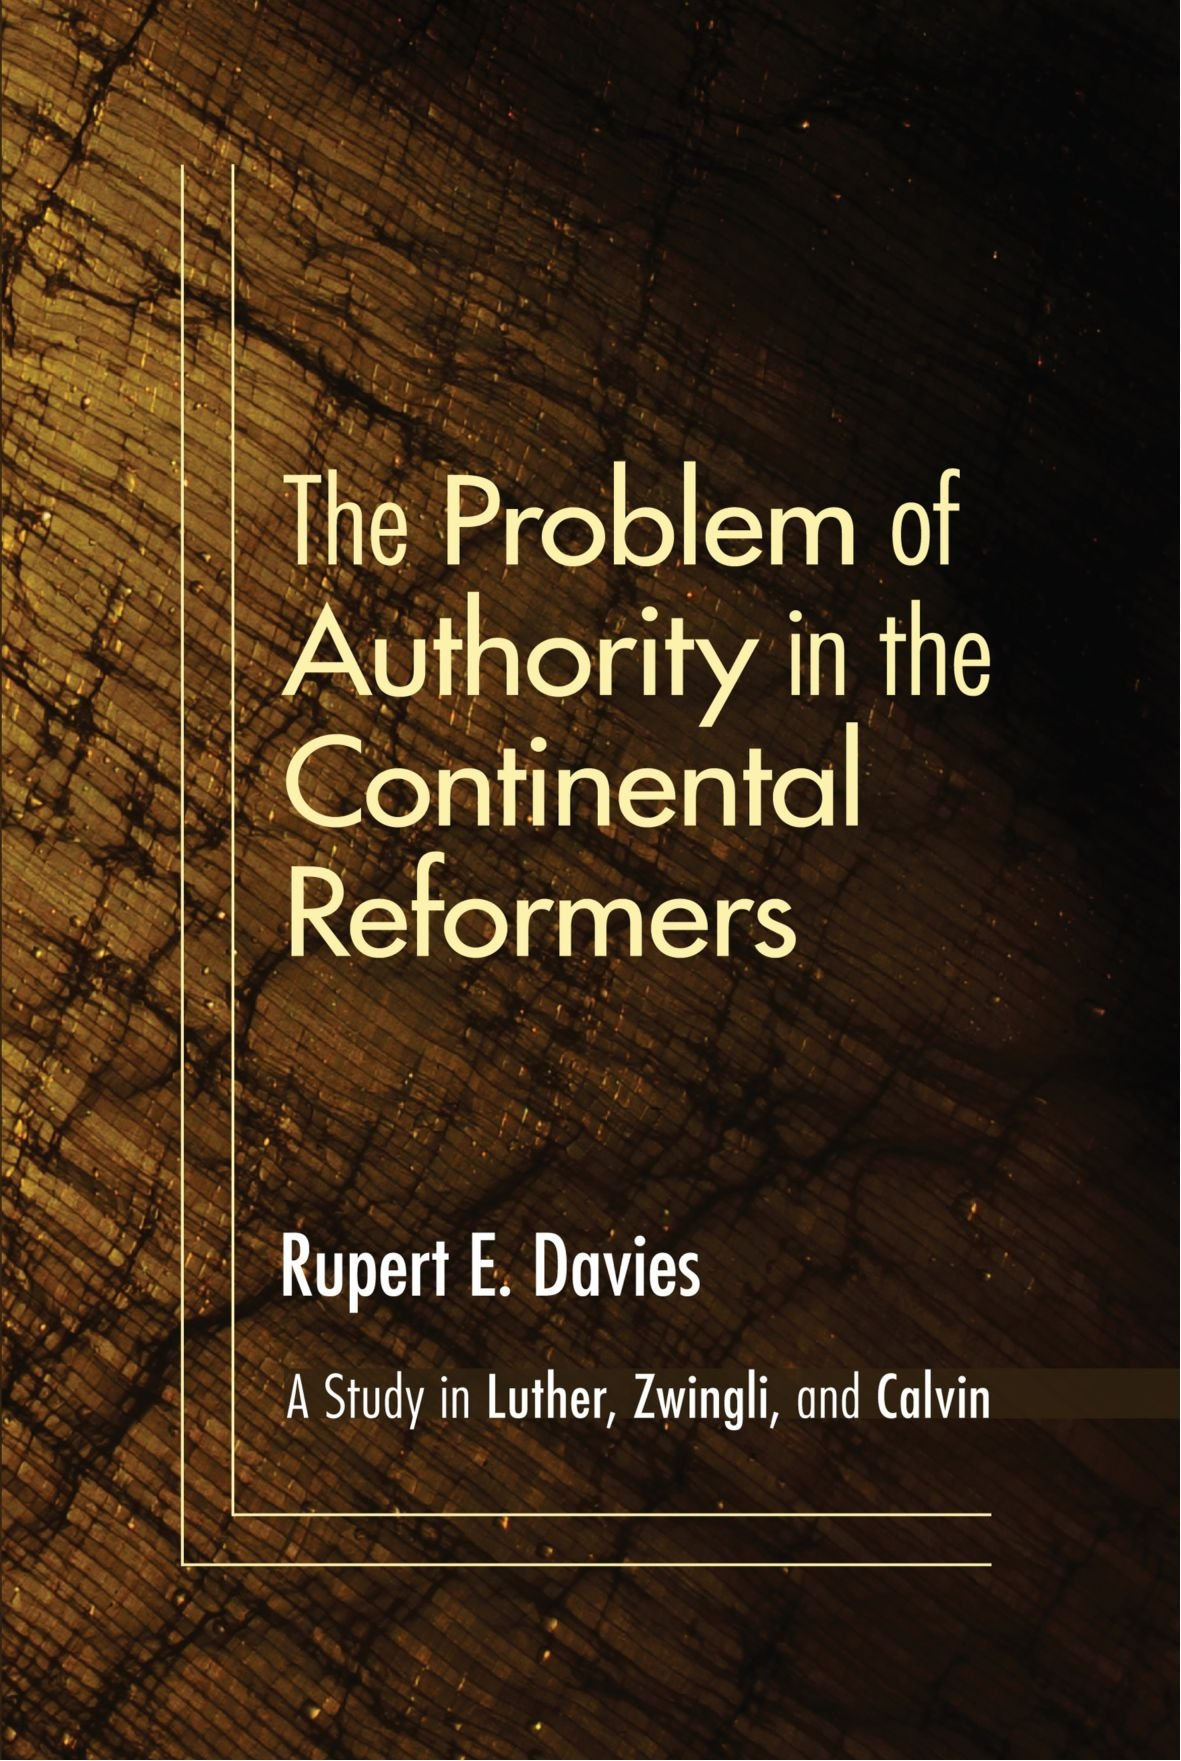 Image result for The problem of authority in the continental reformers